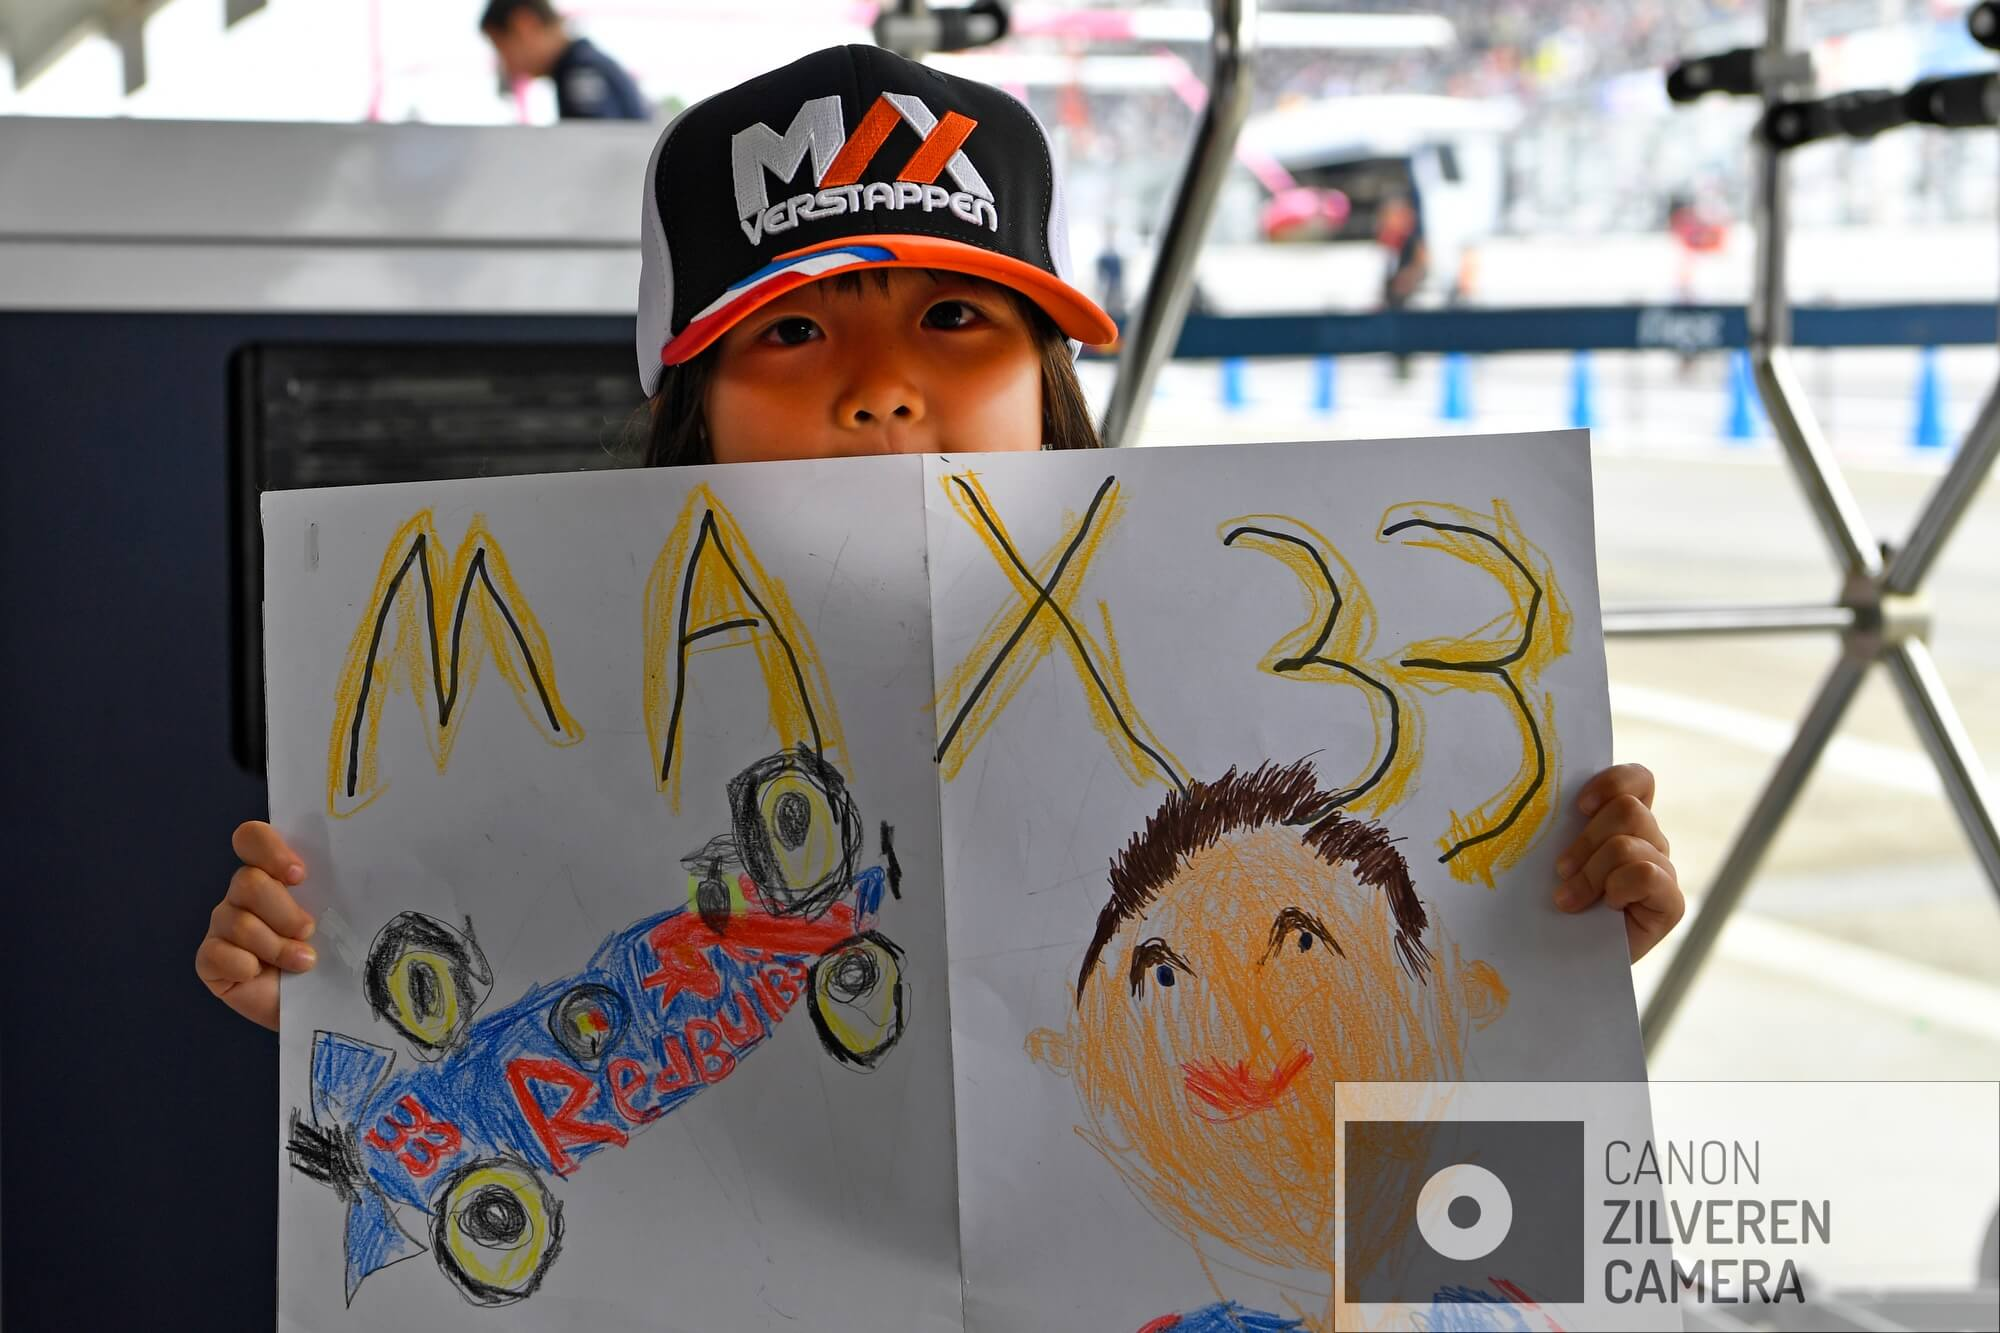 Japanese Max Verstappen  Fan, Red Bull Racing, Grand Prix Japan 2018, Formula1, Round 17, Suzuka circuit.